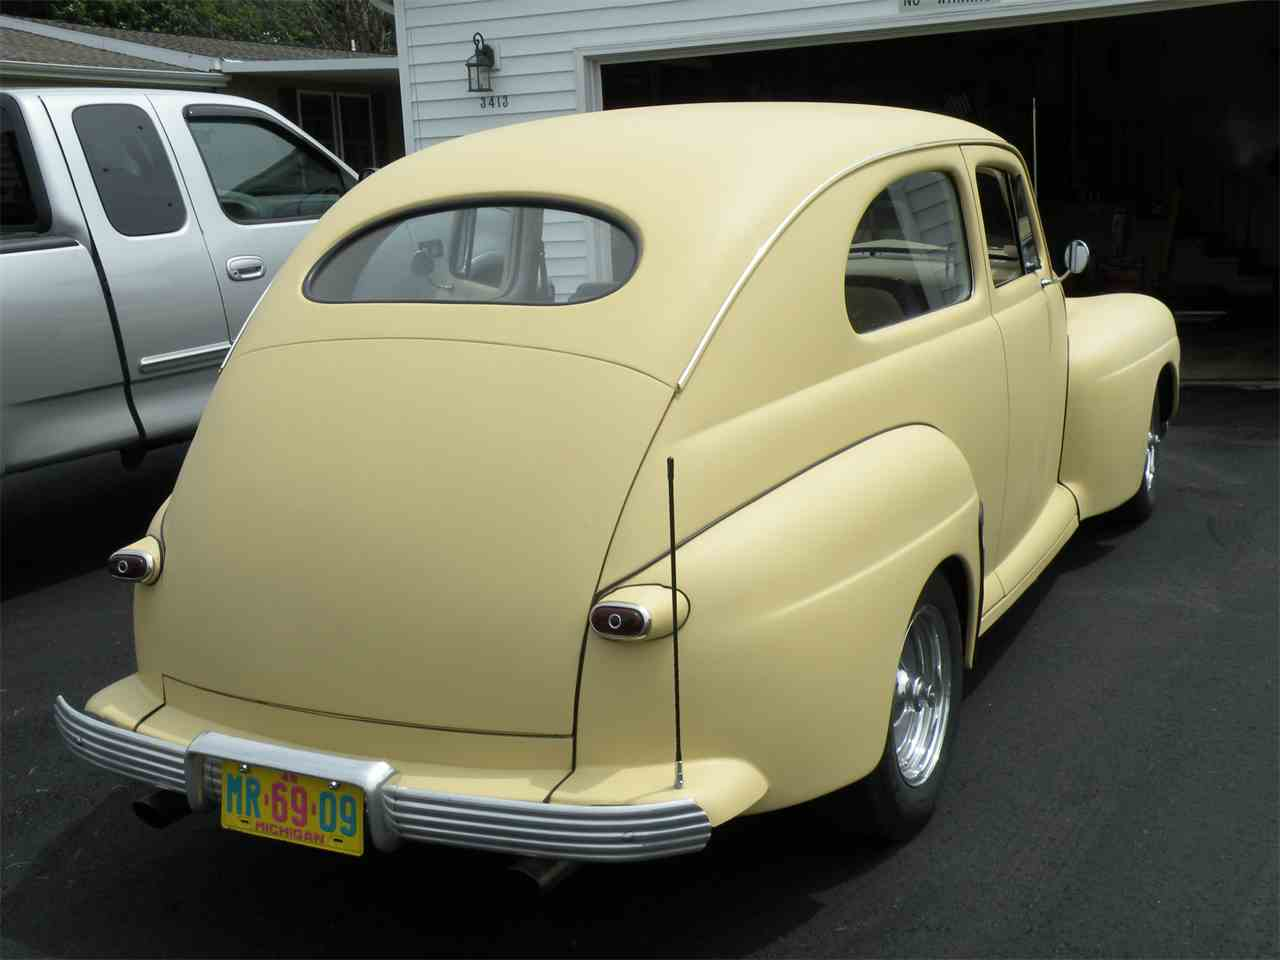 Large Picture of Classic 1948 Ford Tudor - $17,500.00 Offered by a Private Seller - H7VH